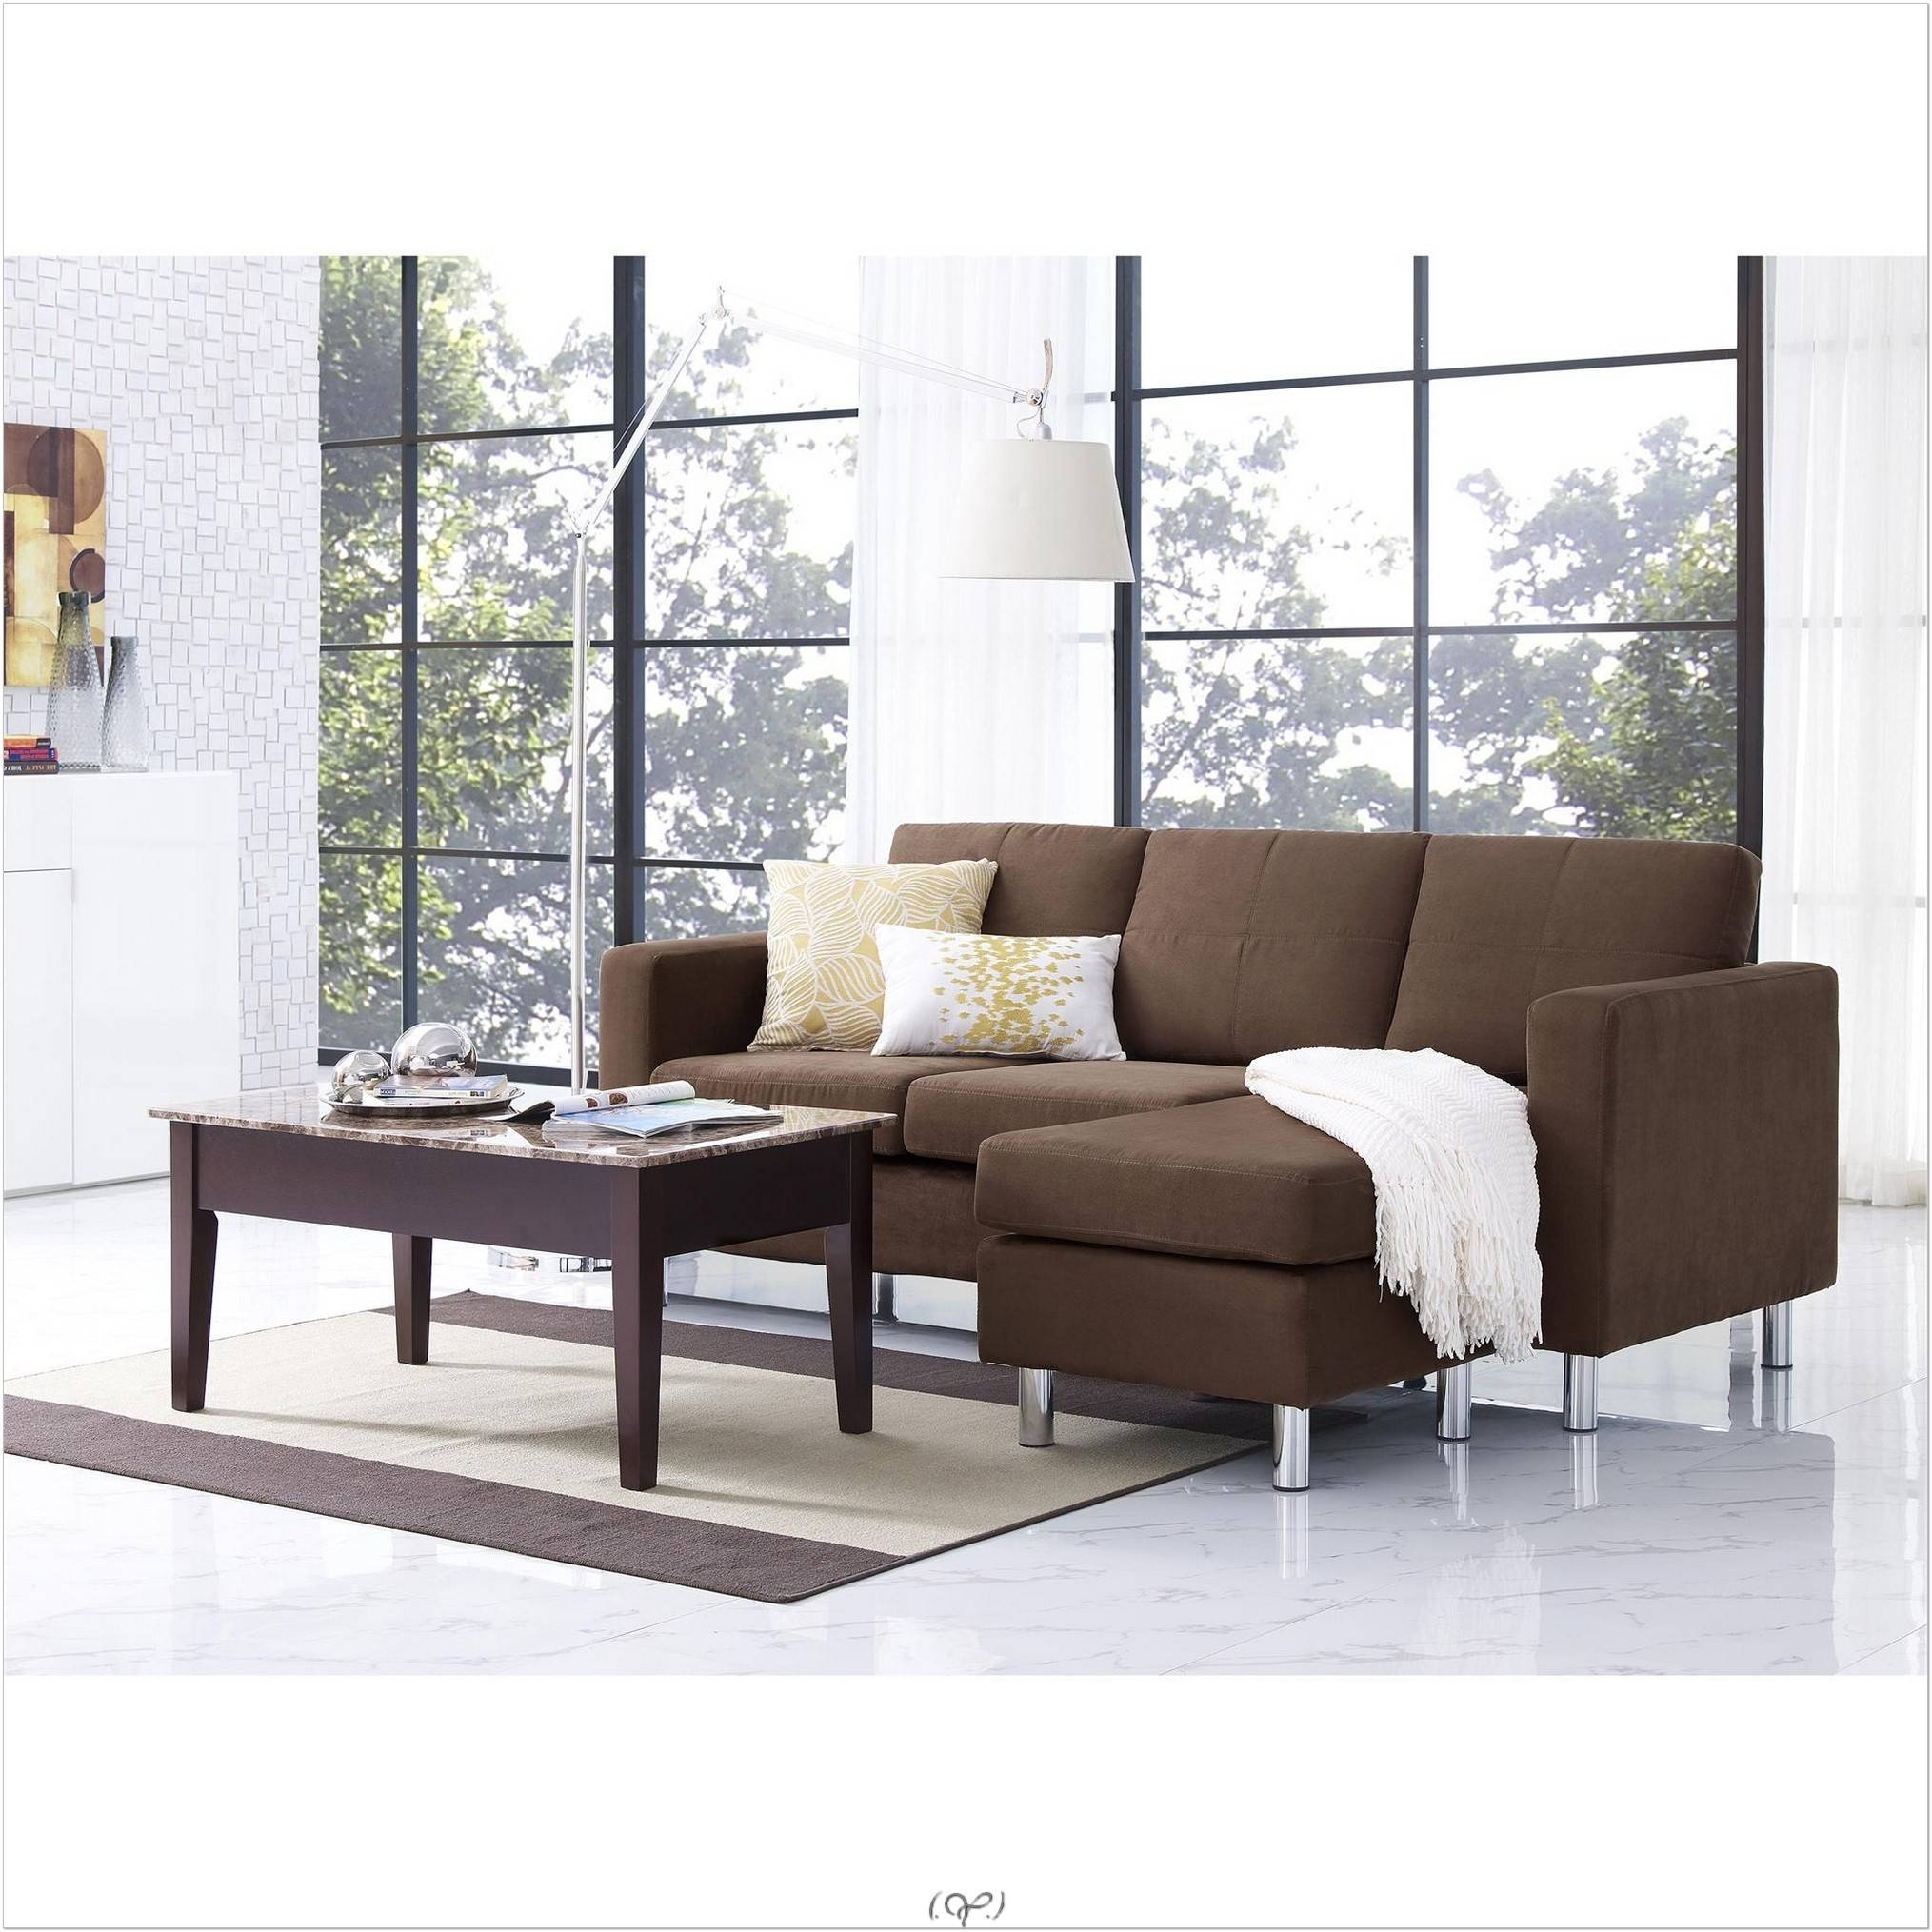 Craftsman Sectional Sofa ~ Hmmi In Craftsman Sectional Sofa (Image 2 Of 30)